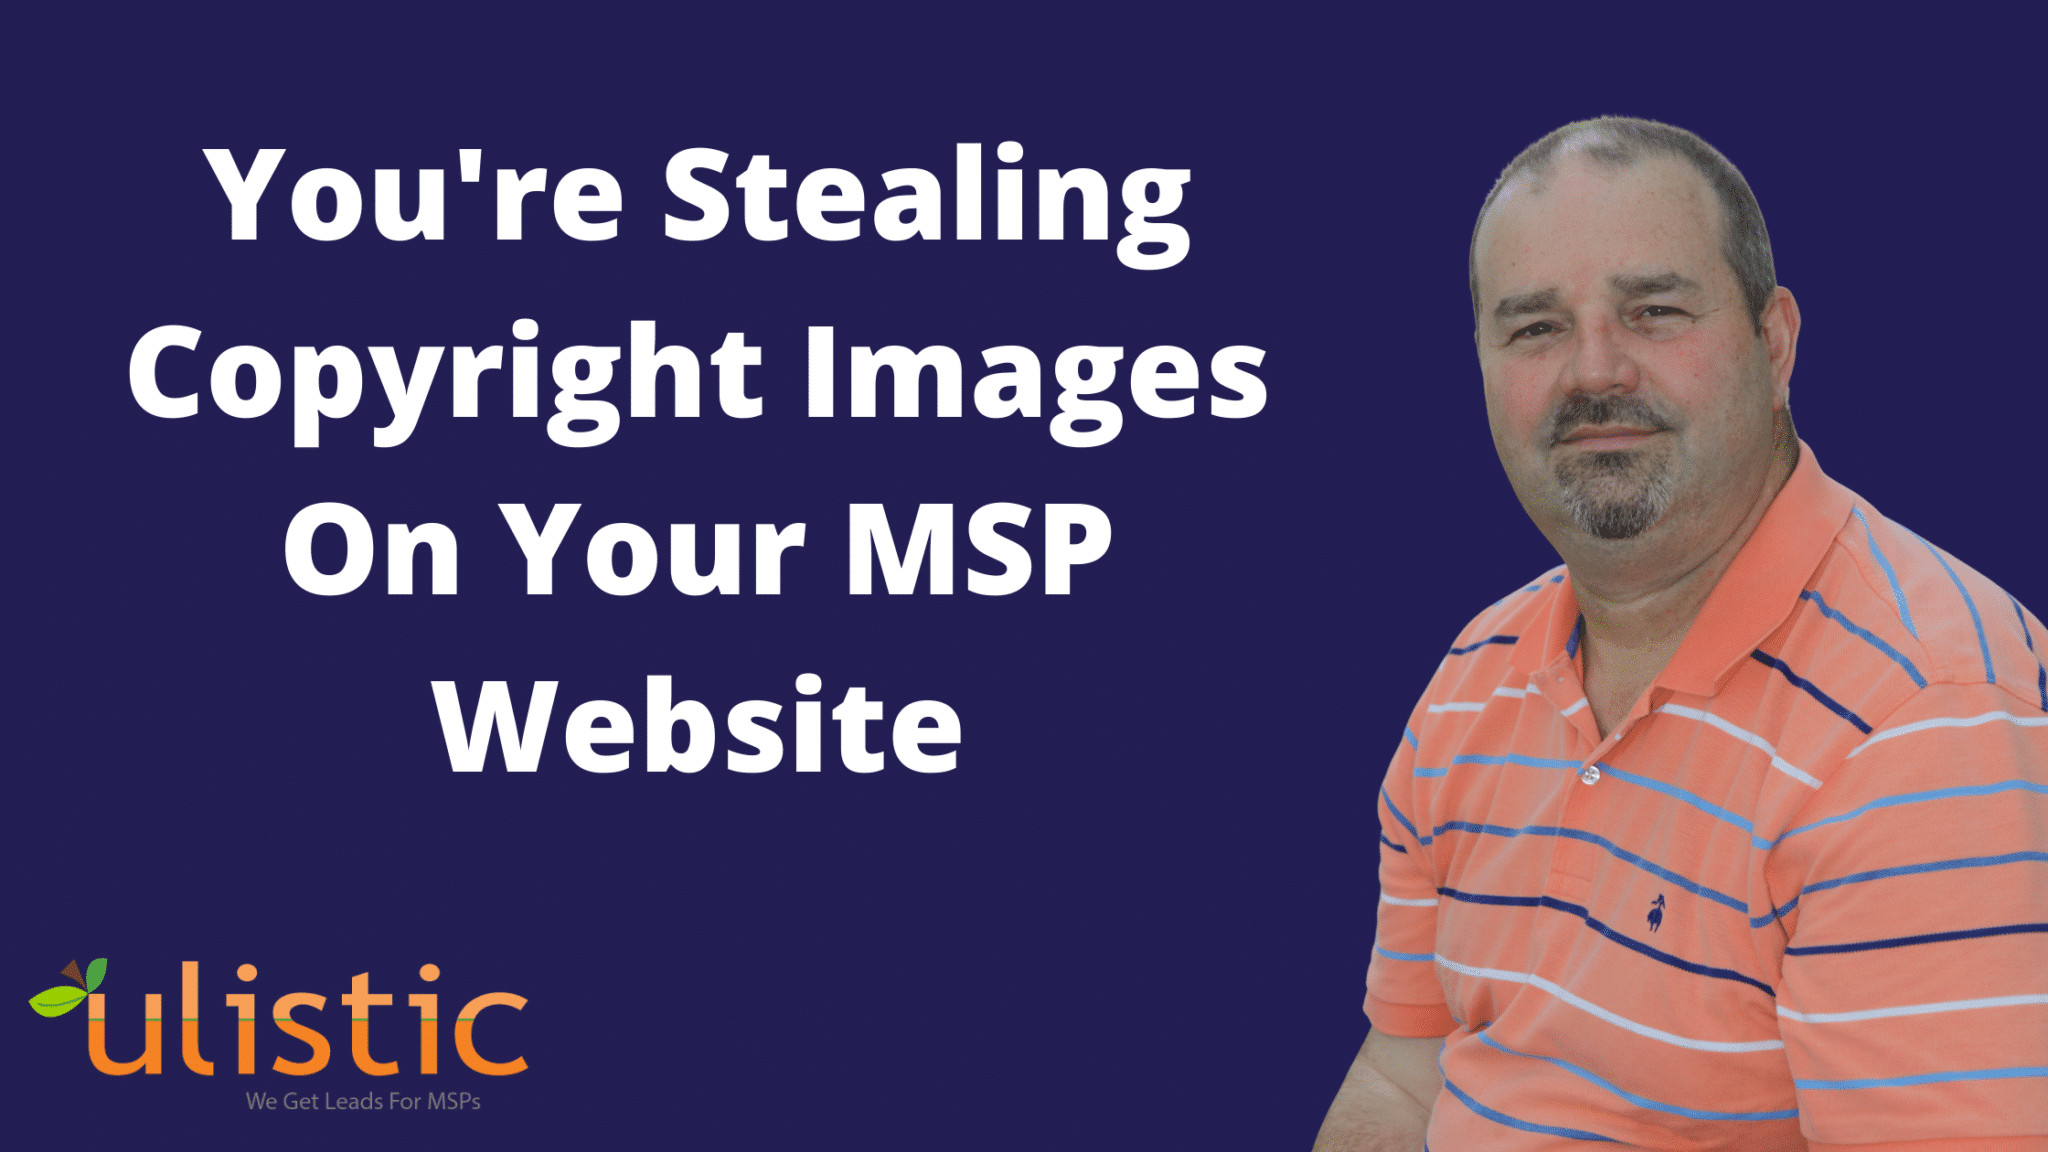 You're Stealing Copyright Images On Your MSP Website